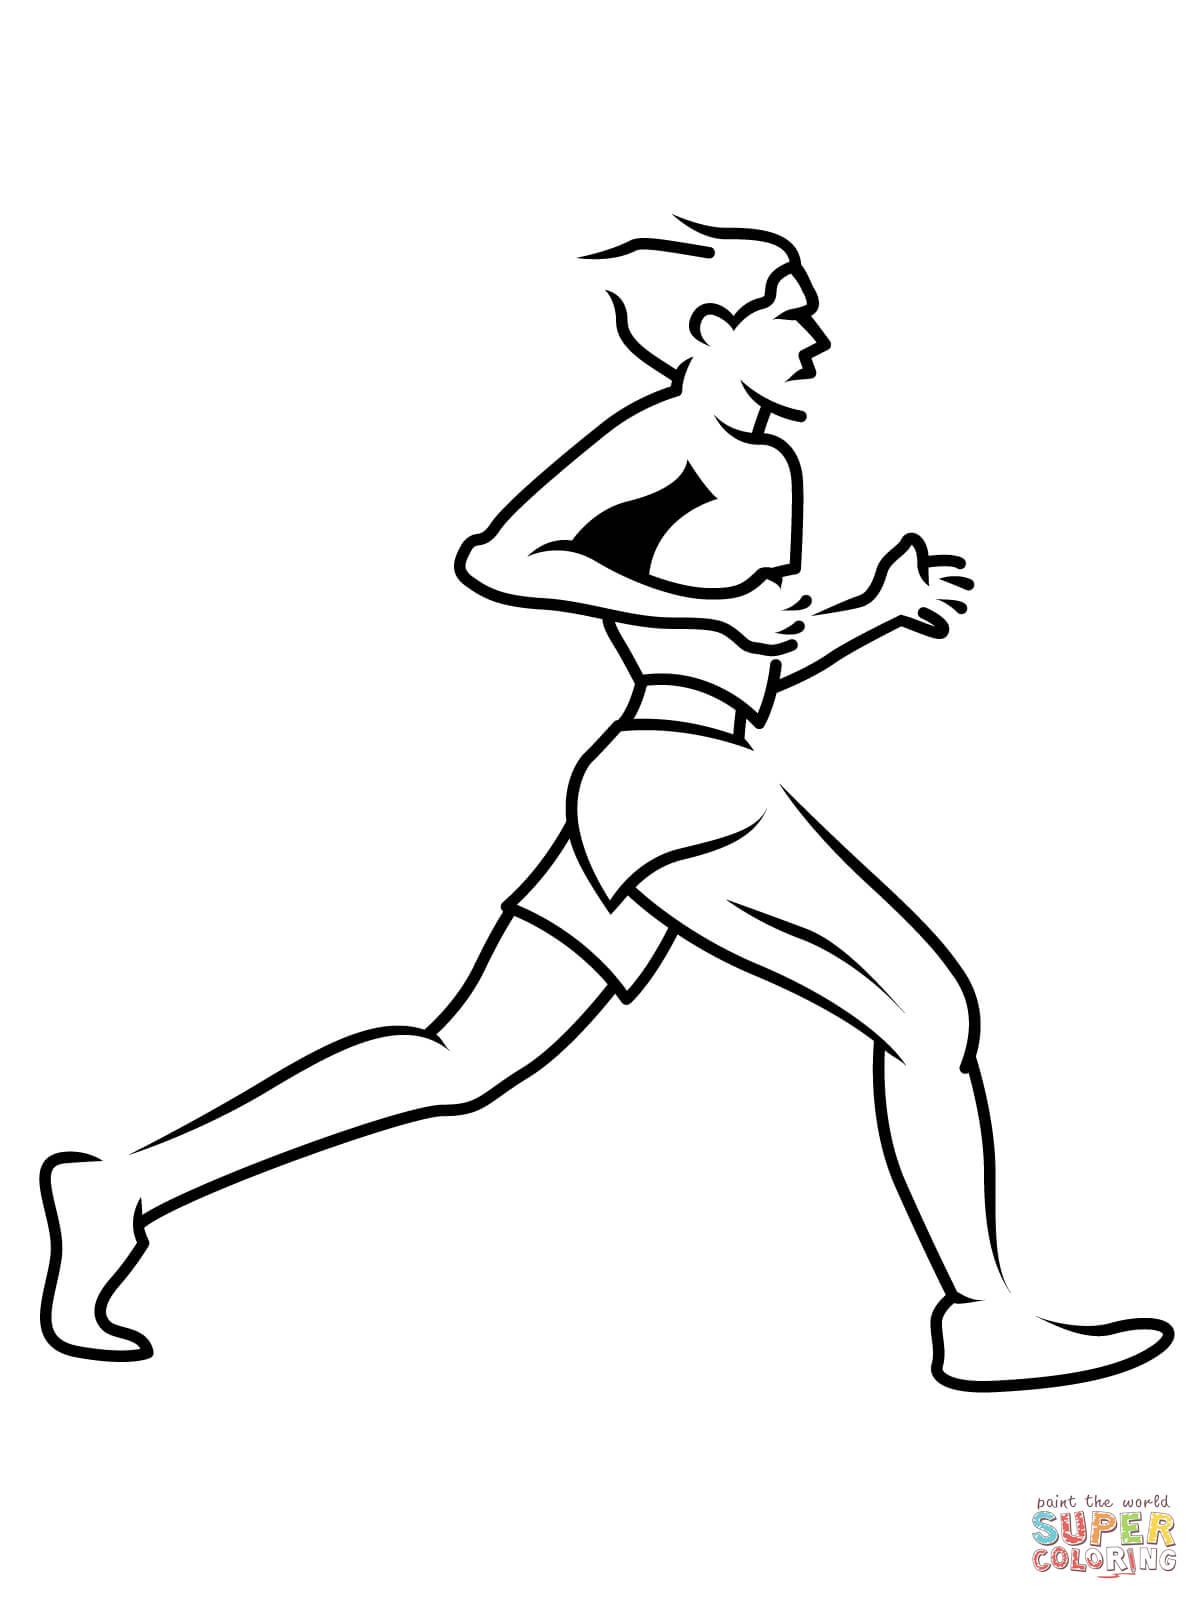 1200x1600 runner drawing athlete runner for free download